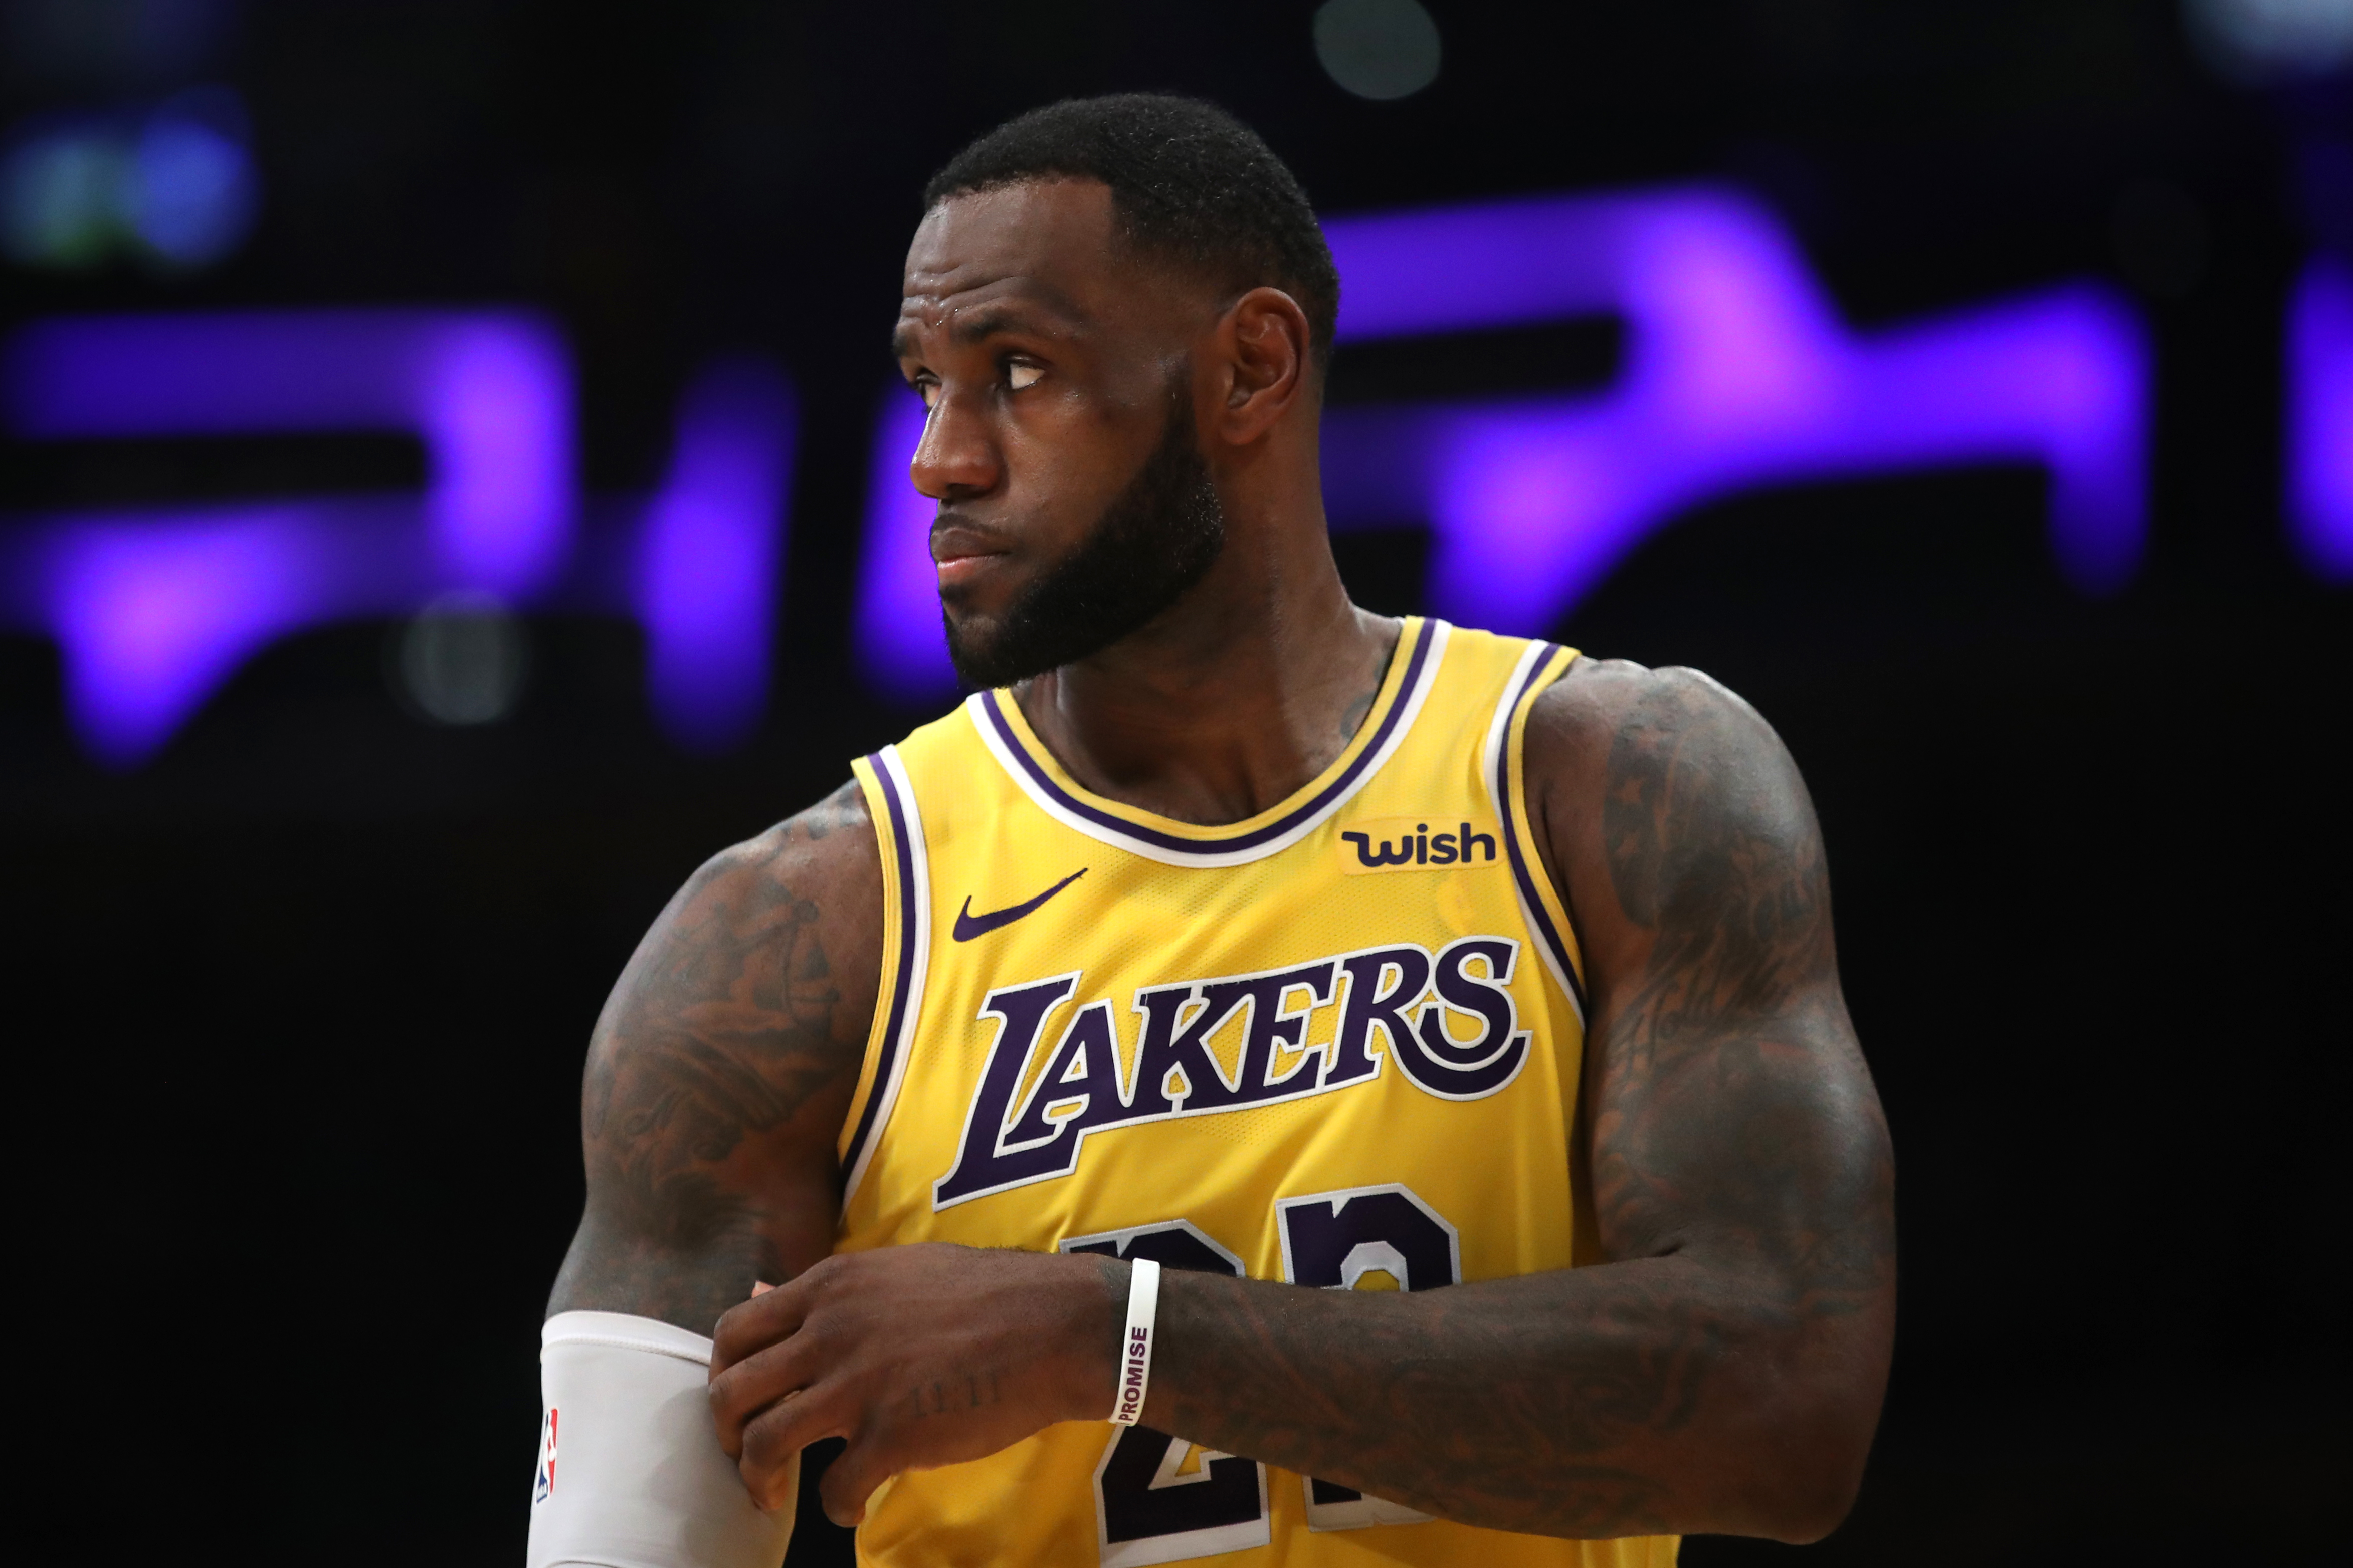 Fans Blast LeBron James For Comparing Disney Bubble To Going To Prison